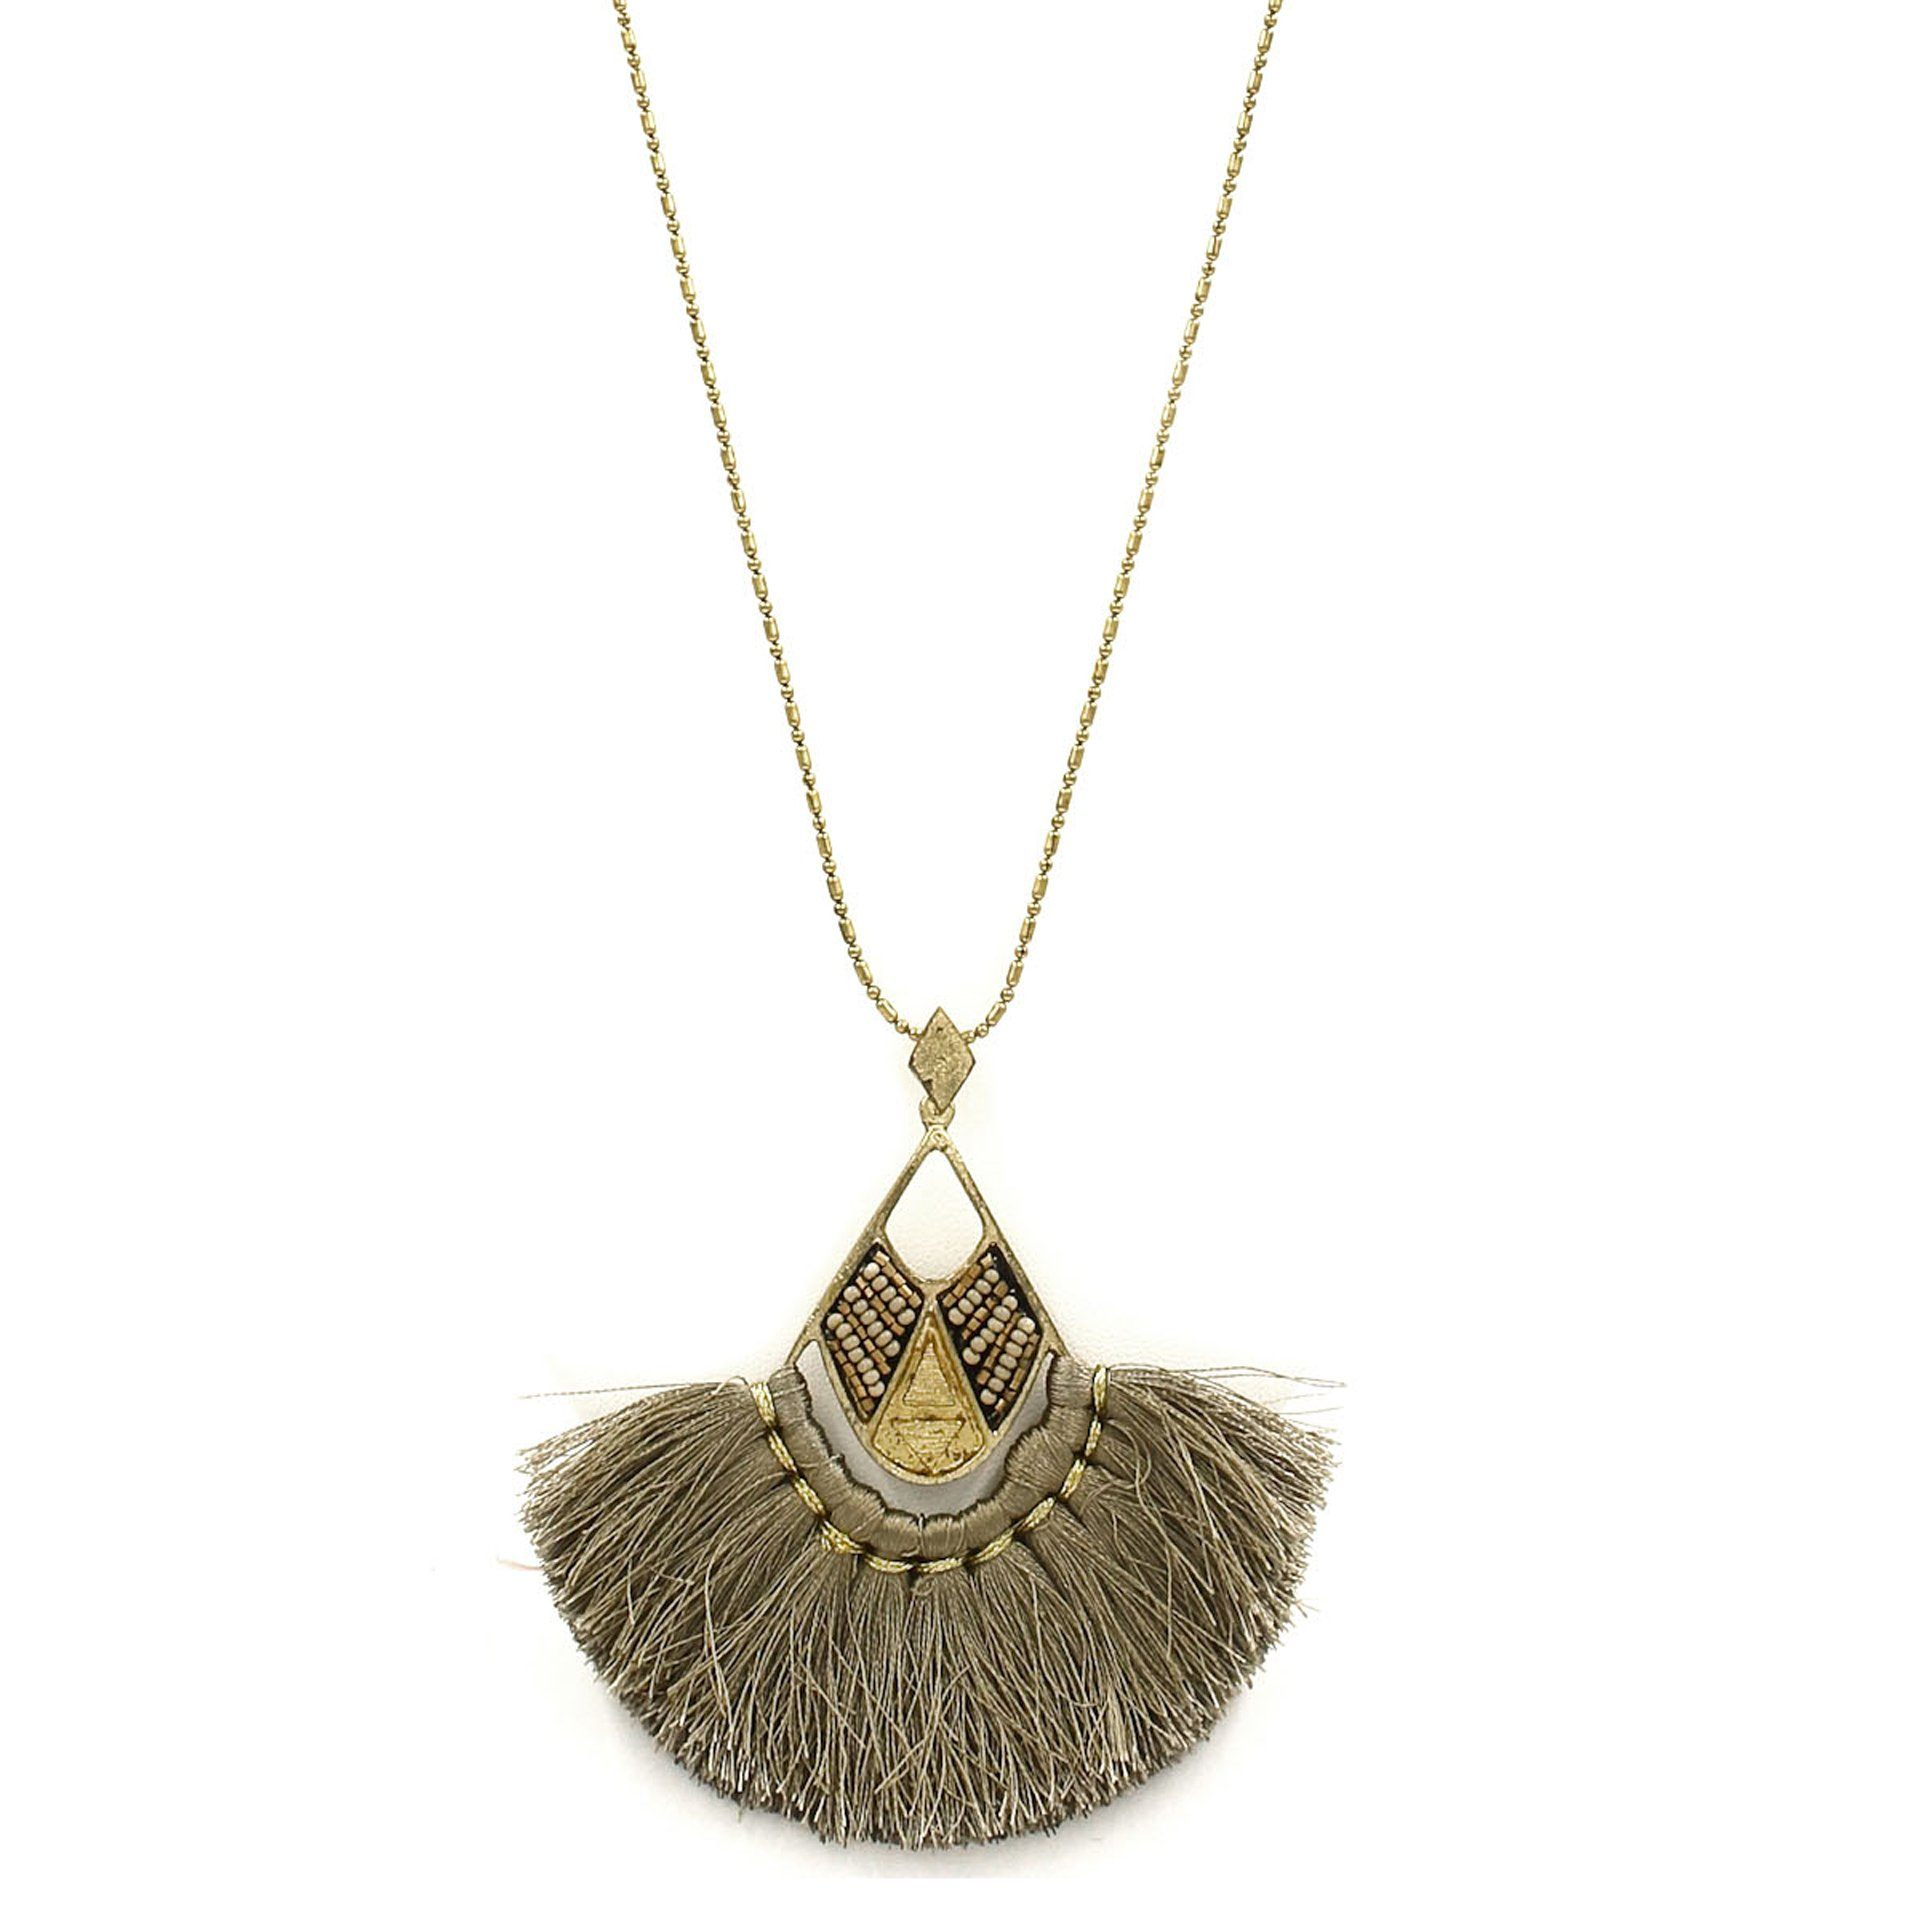 'Night Fever' Fringe Necklace - Arlo and Arrows